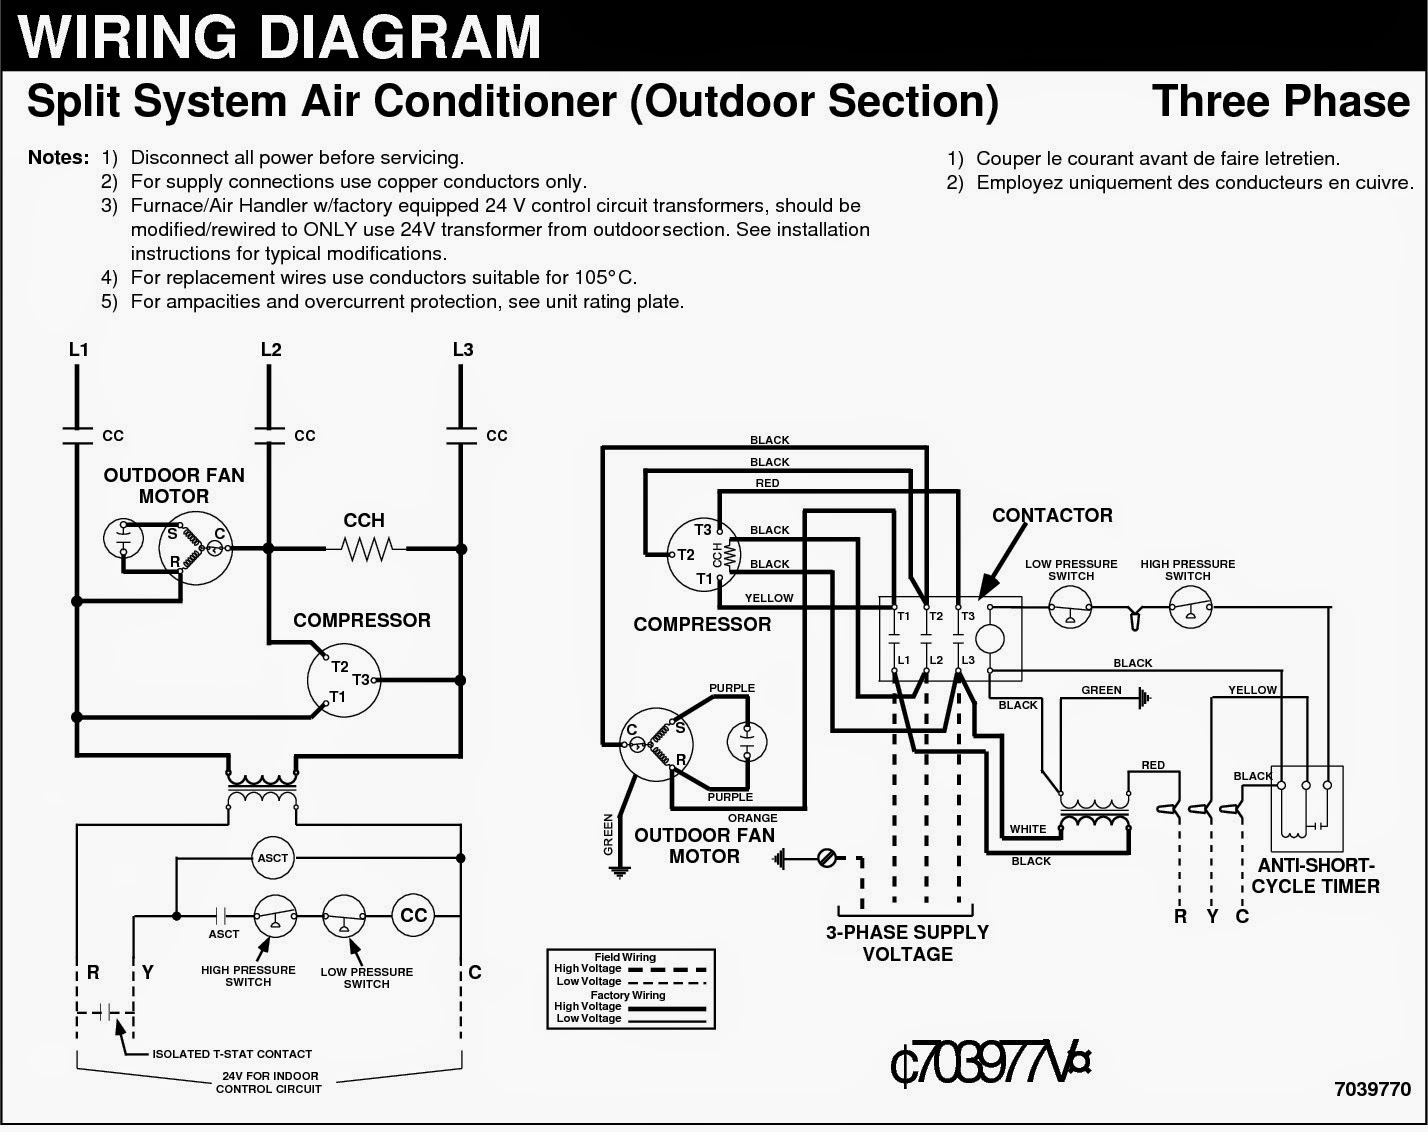 3+phase electrical wiring diagrams for air conditioning systems part two wiring diagram for air conditioner at gsmx.co